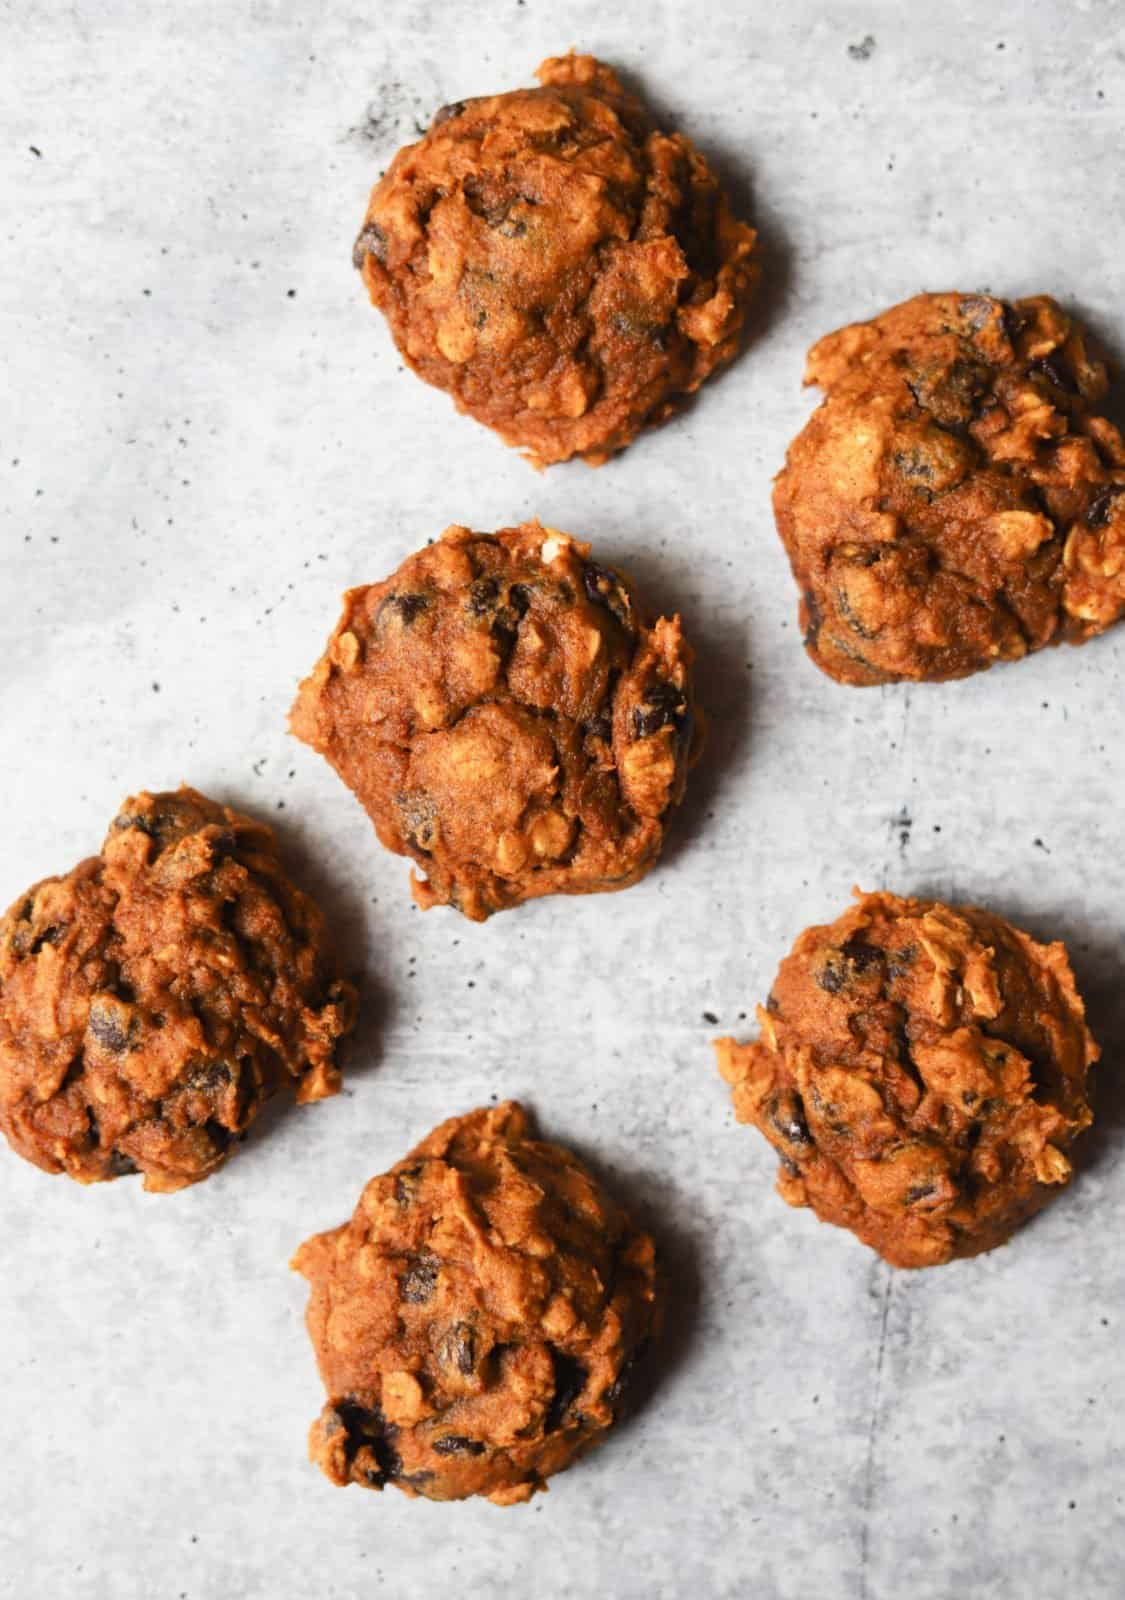 Pumpkin cookies on a grey background